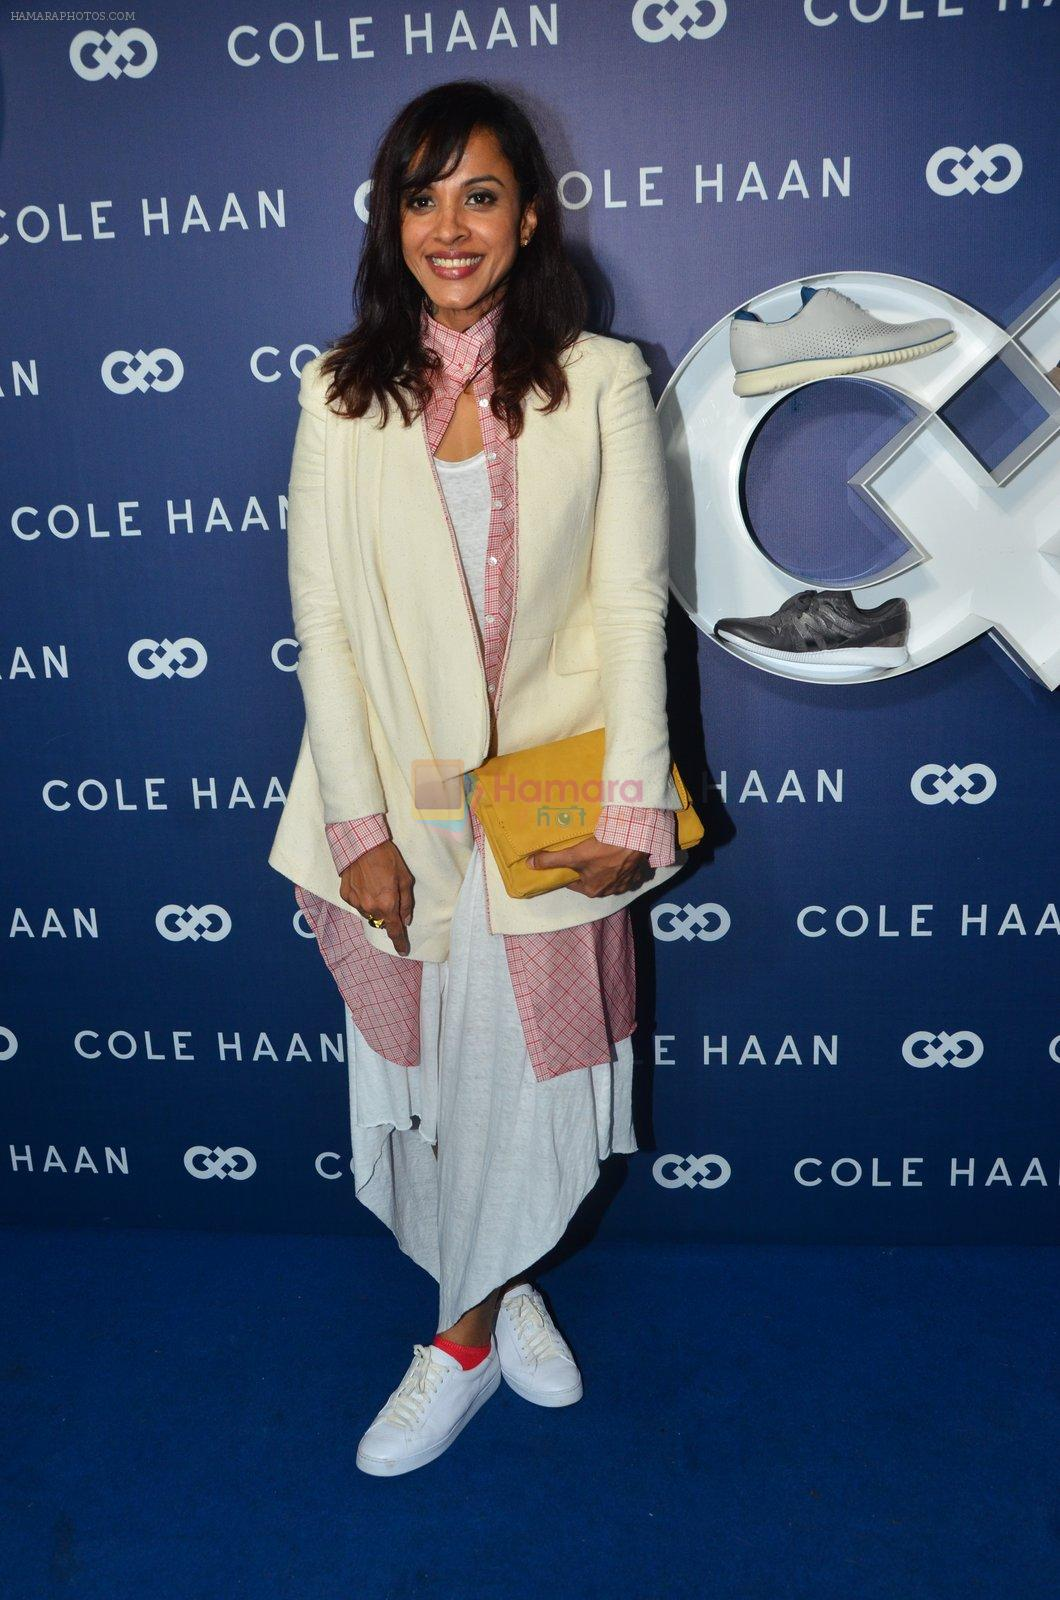 Manasi Scott at the launch of Cole Haan in India on 26th Aug 2016